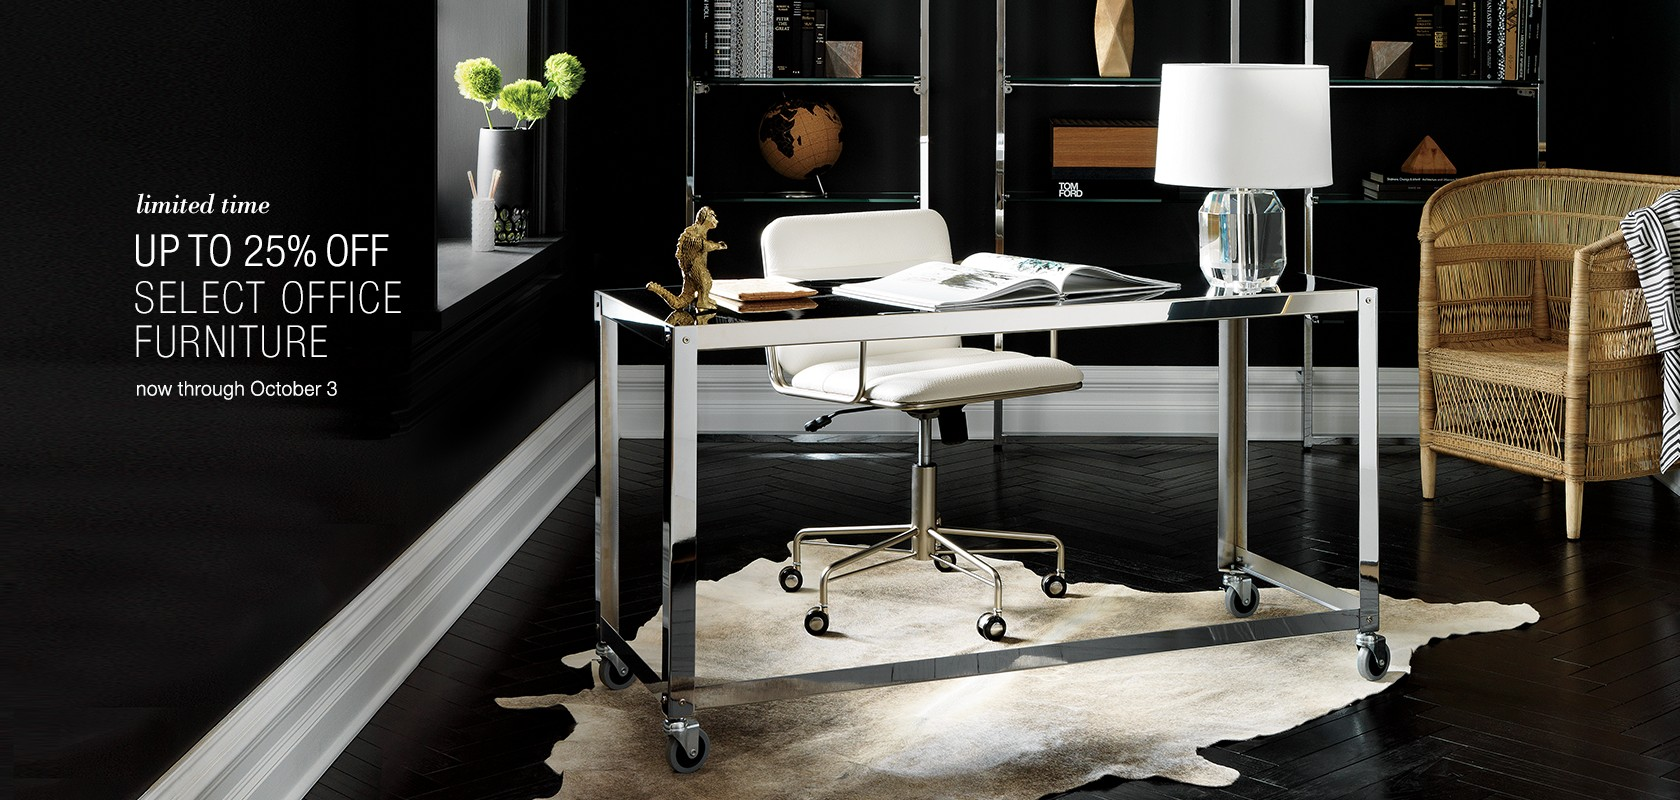 up to 25% off select office furniture